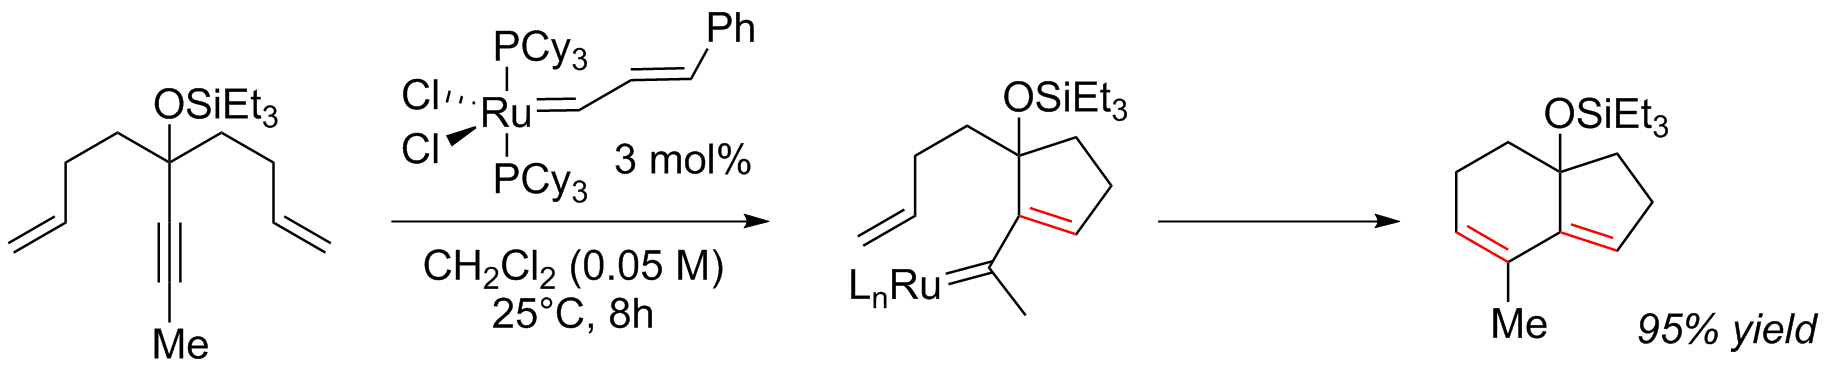 a novel ligand for the enantioselective ruthenium-catalyzed olefin metathesis Catalytic olefin metathesis—through which pairs of c5c bonds are  metal  complexes 1–3, as well as a number of ru-based deriva-  classes are effective  in enantioselective ring-opening/cross meta-  novel ruthenium-based  metathesis catalysts containing  probing of the ligand anatomy: effects of the  chelating.